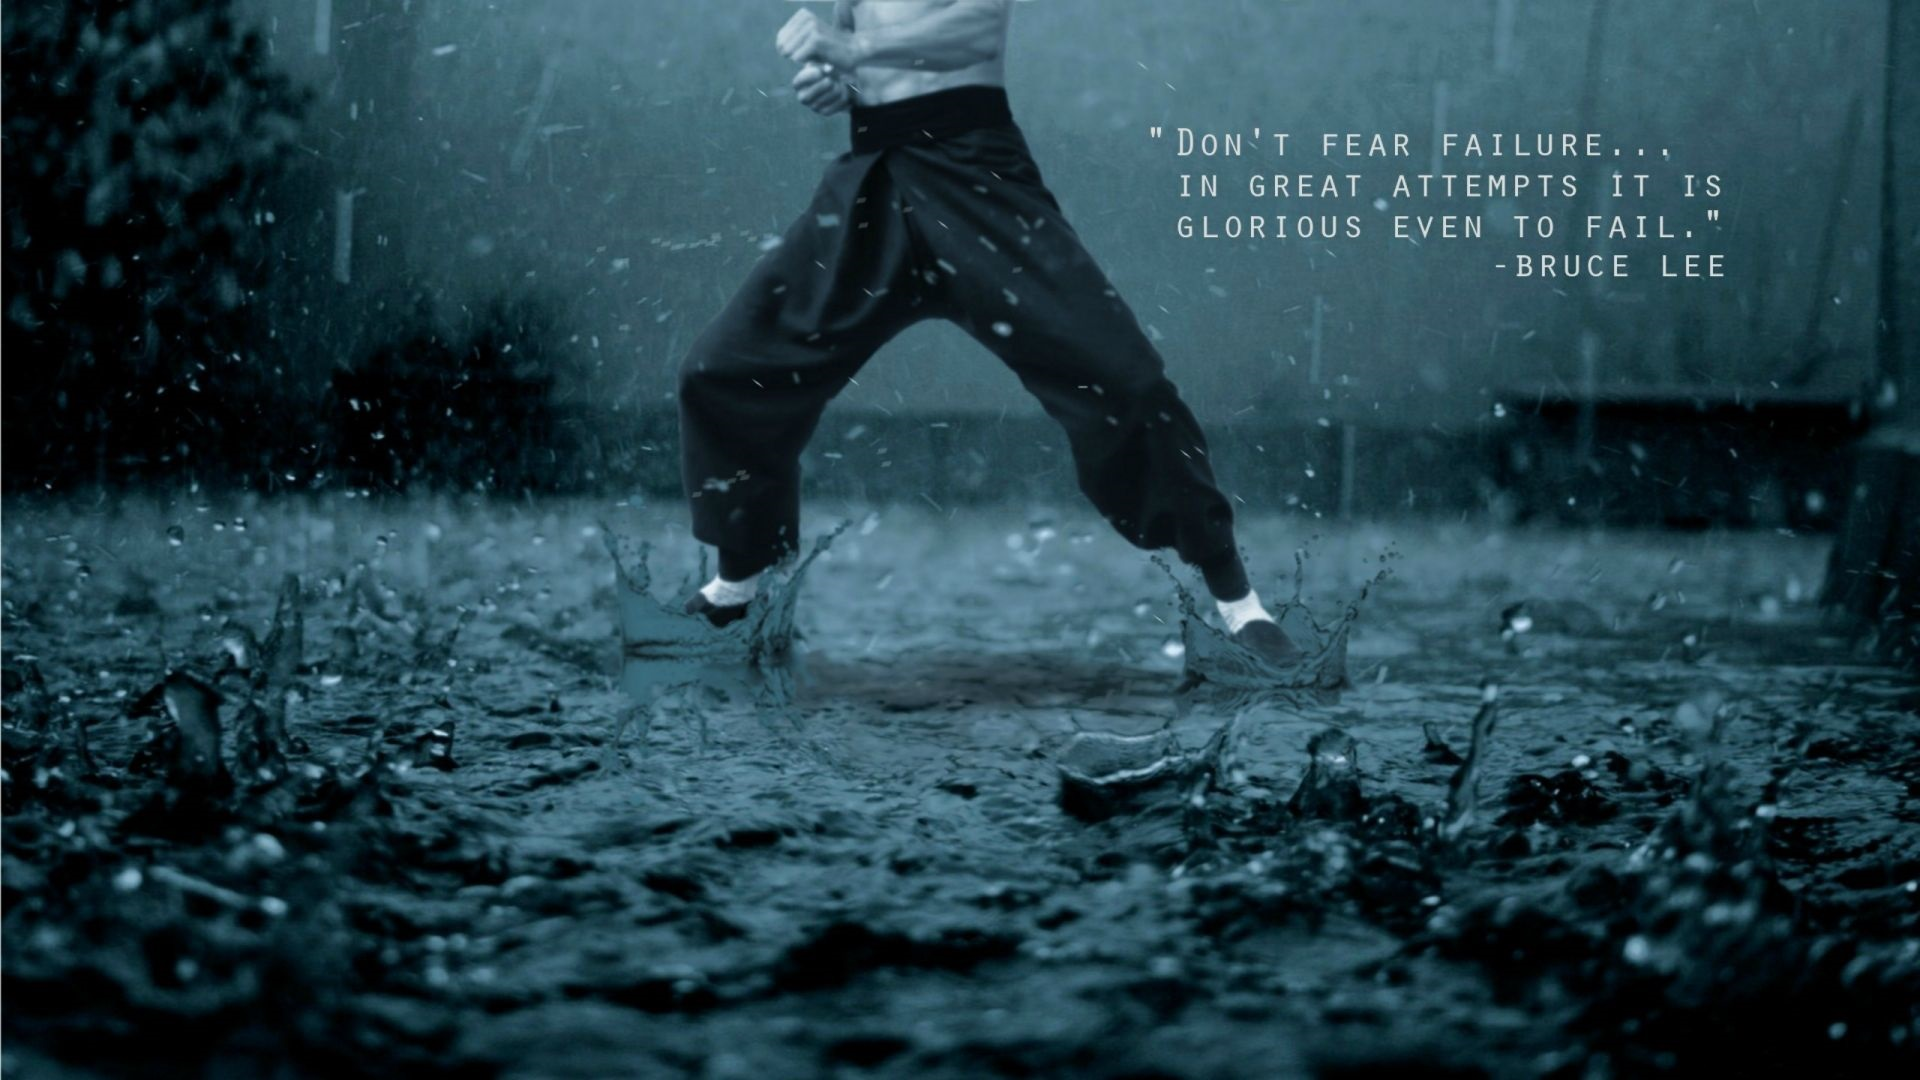 dont fear failure - bruce lee quote